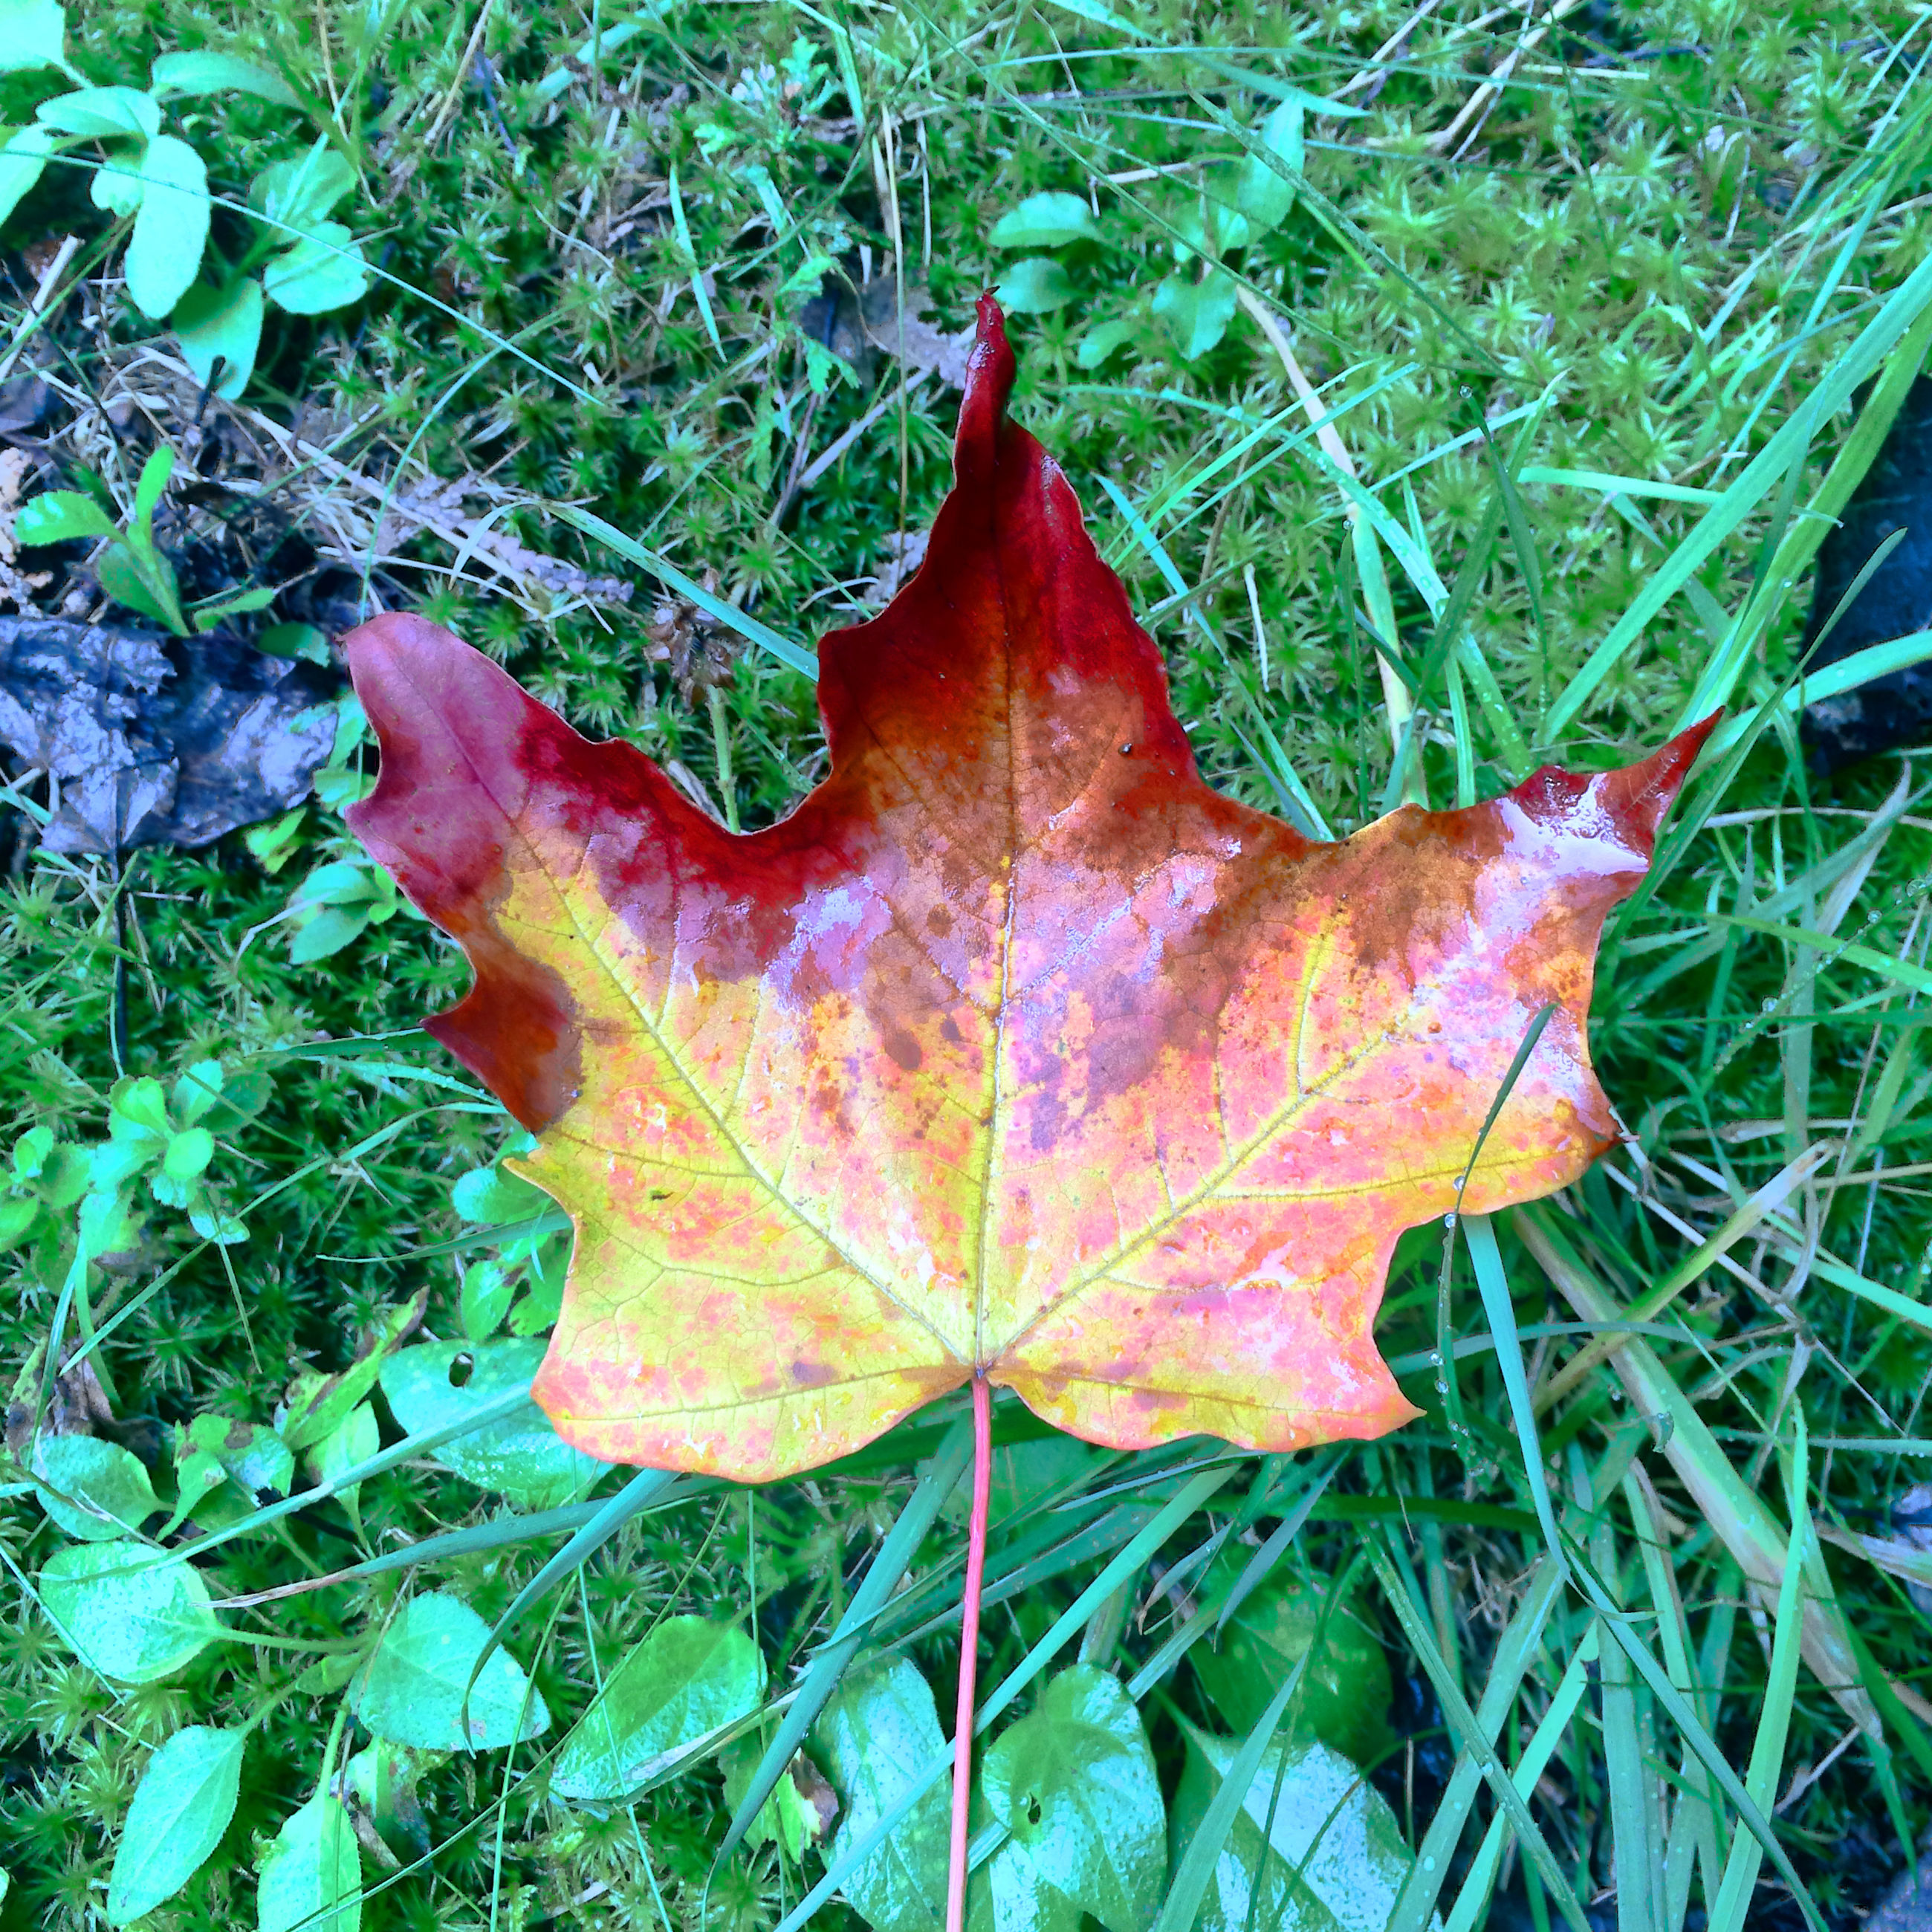 leaf, autumn, change, season, dry, maple leaf, leaf vein, leaves, grass, nature, close-up, fallen, high angle view, natural pattern, field, growth, fragility, natural condition, beauty in nature, orange color